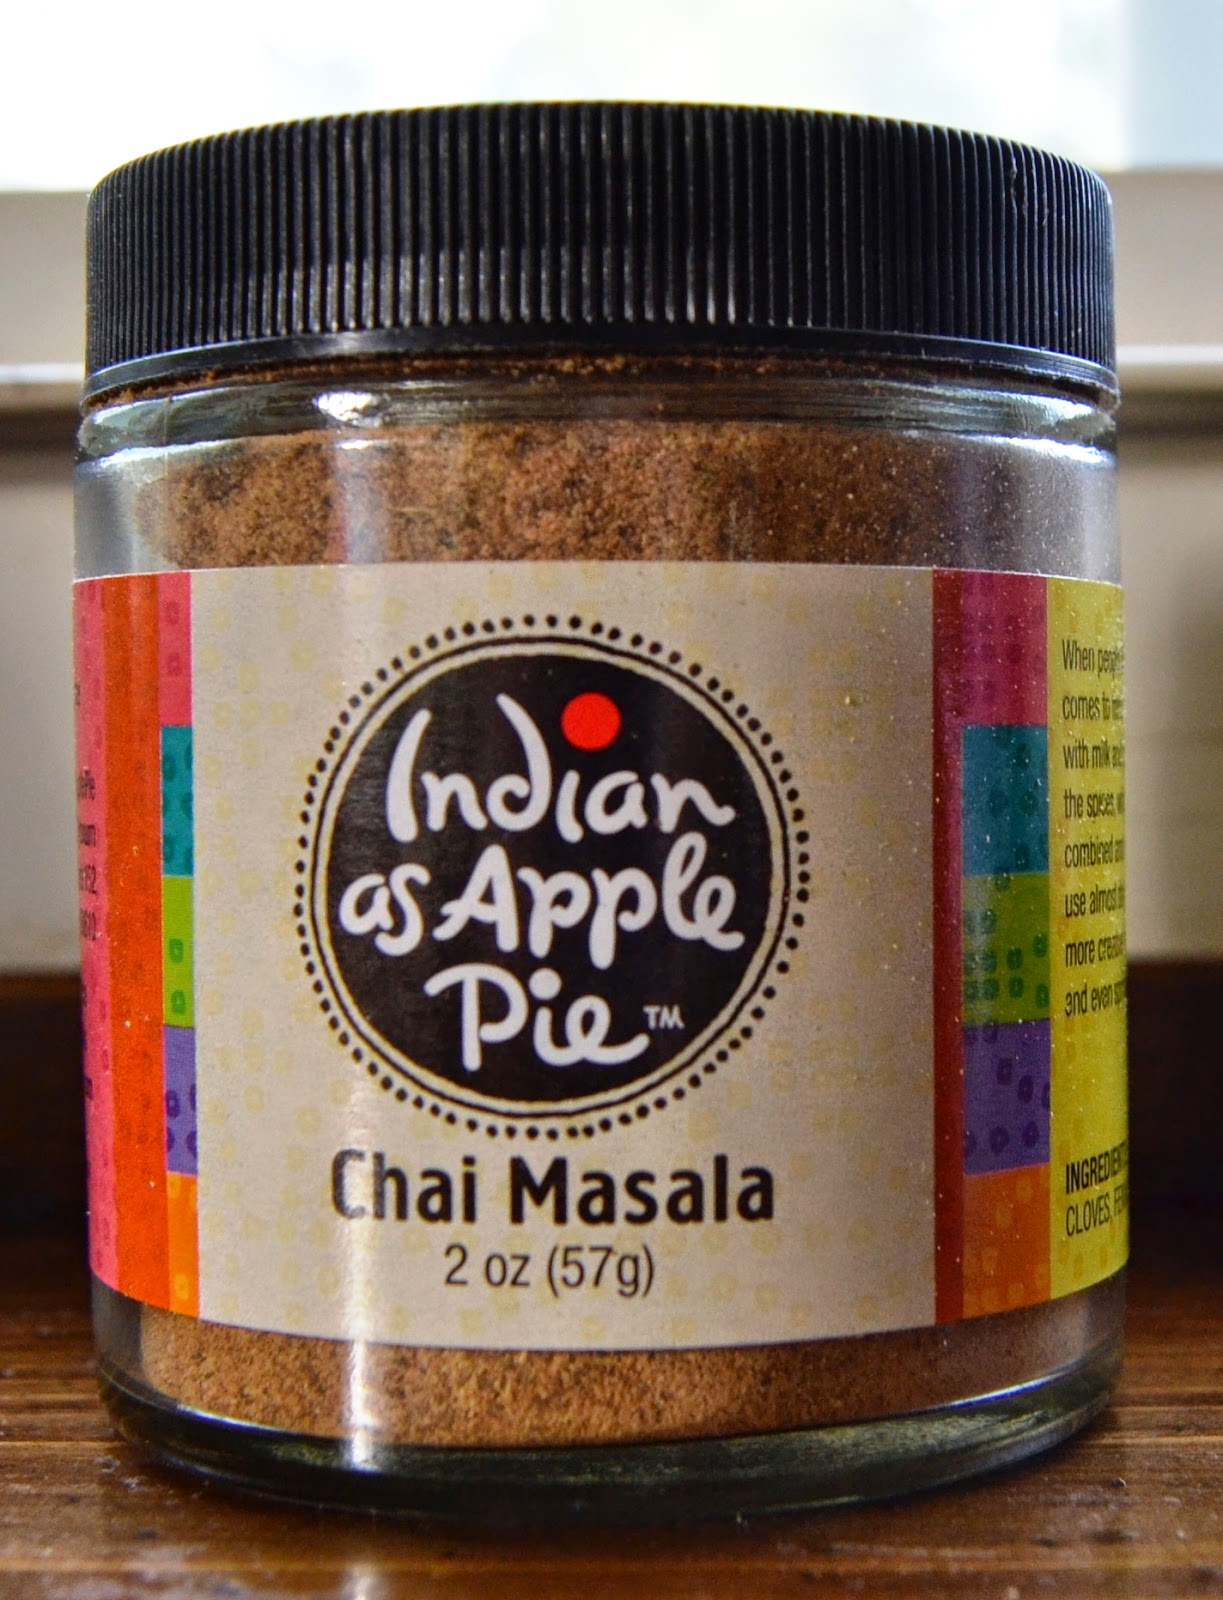 Indian as Apple Pie Chai Masala